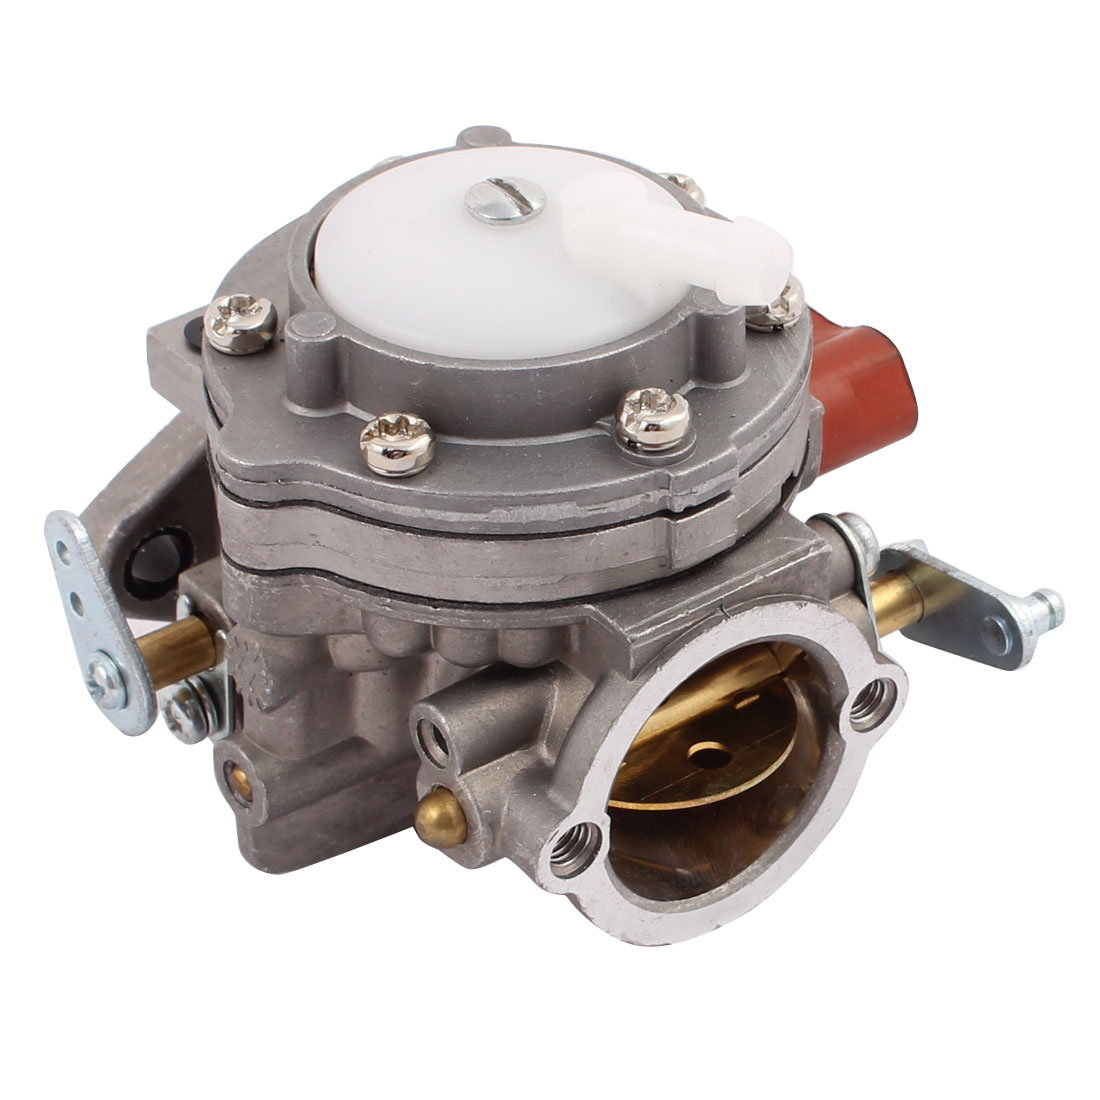 New Carburetor for Stihl Chainsaw Parts Lawn Mower MS070 Carburador Carb